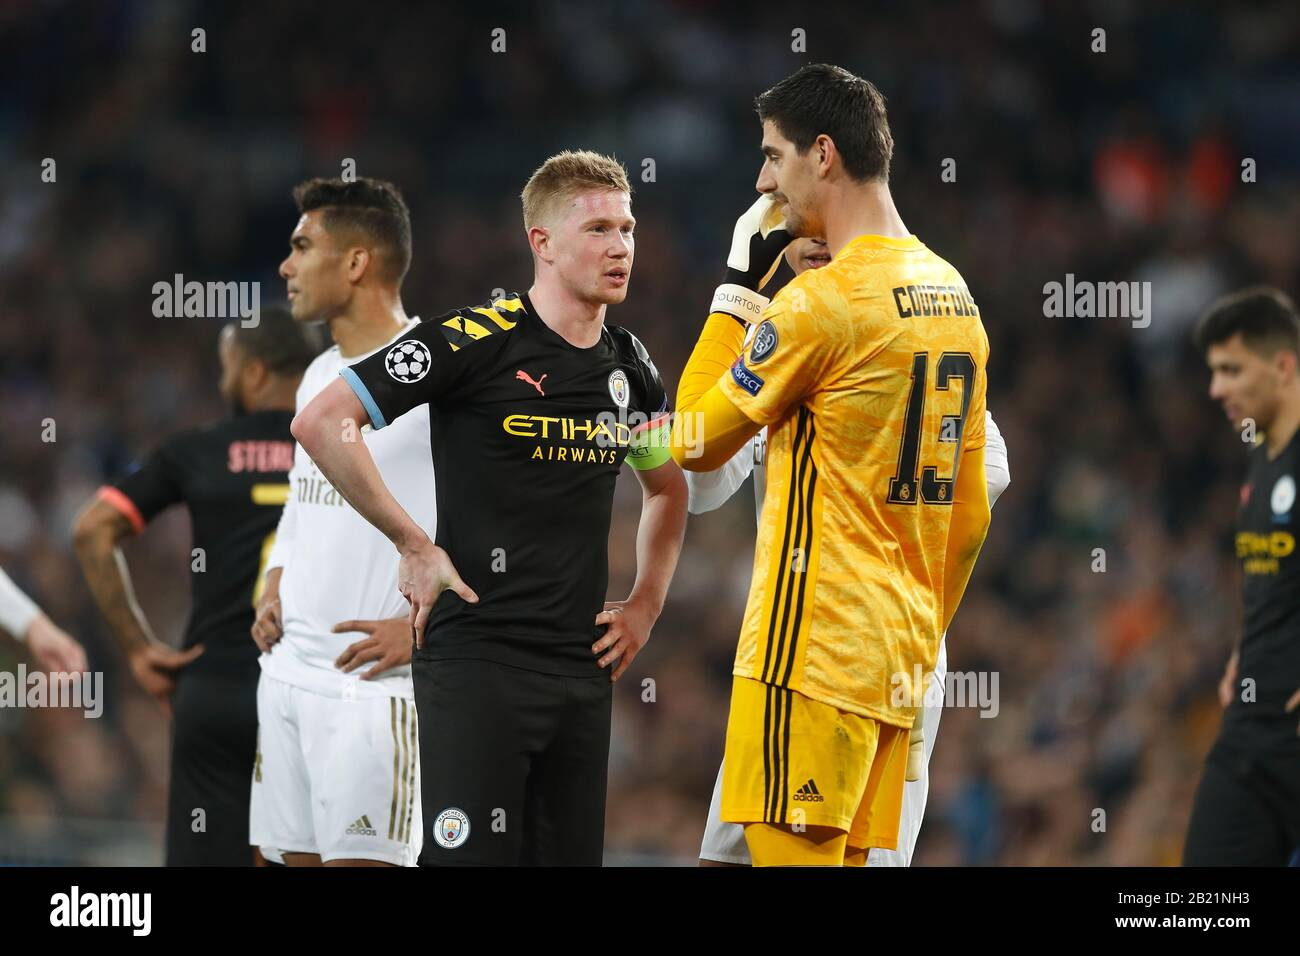 Madrid, Spain. 26th Feb, 2020. (L-R) Kevin De Bruyne (ManC), Thibaut Courtois (Real) Football/Soccer : UEFA Champions League Round of 16 1st leg match between Real Madrid CF 1-2 Manchester City FC at the Santiago Bernabeu Stadium in Madrid, Spain . Credit: Mutsu Kawamori/AFLO/Alamy Live News Stock Photo